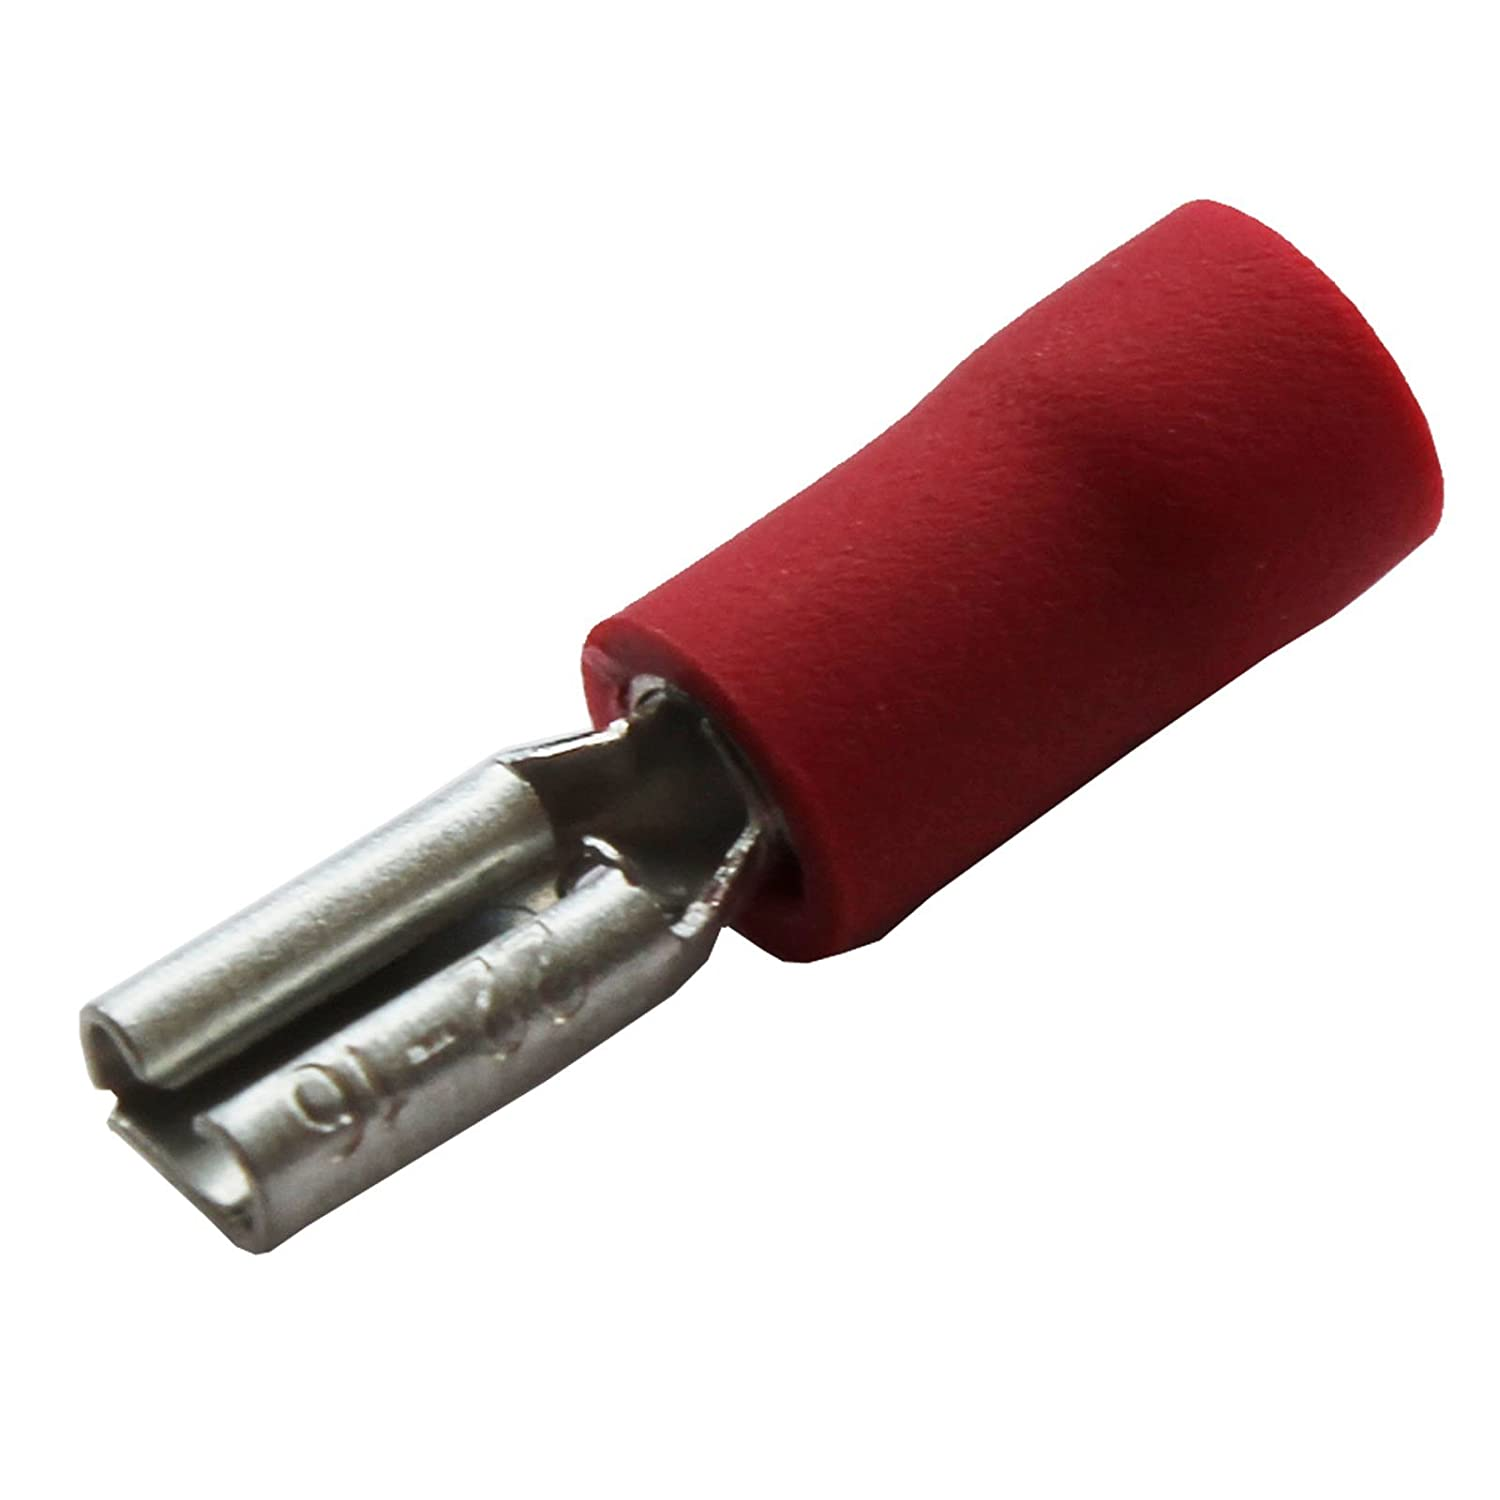 All Trade Direct 20 x Red 2.8mm Female Spade Connector Push On Car Radio Speaker Crimp Terminal